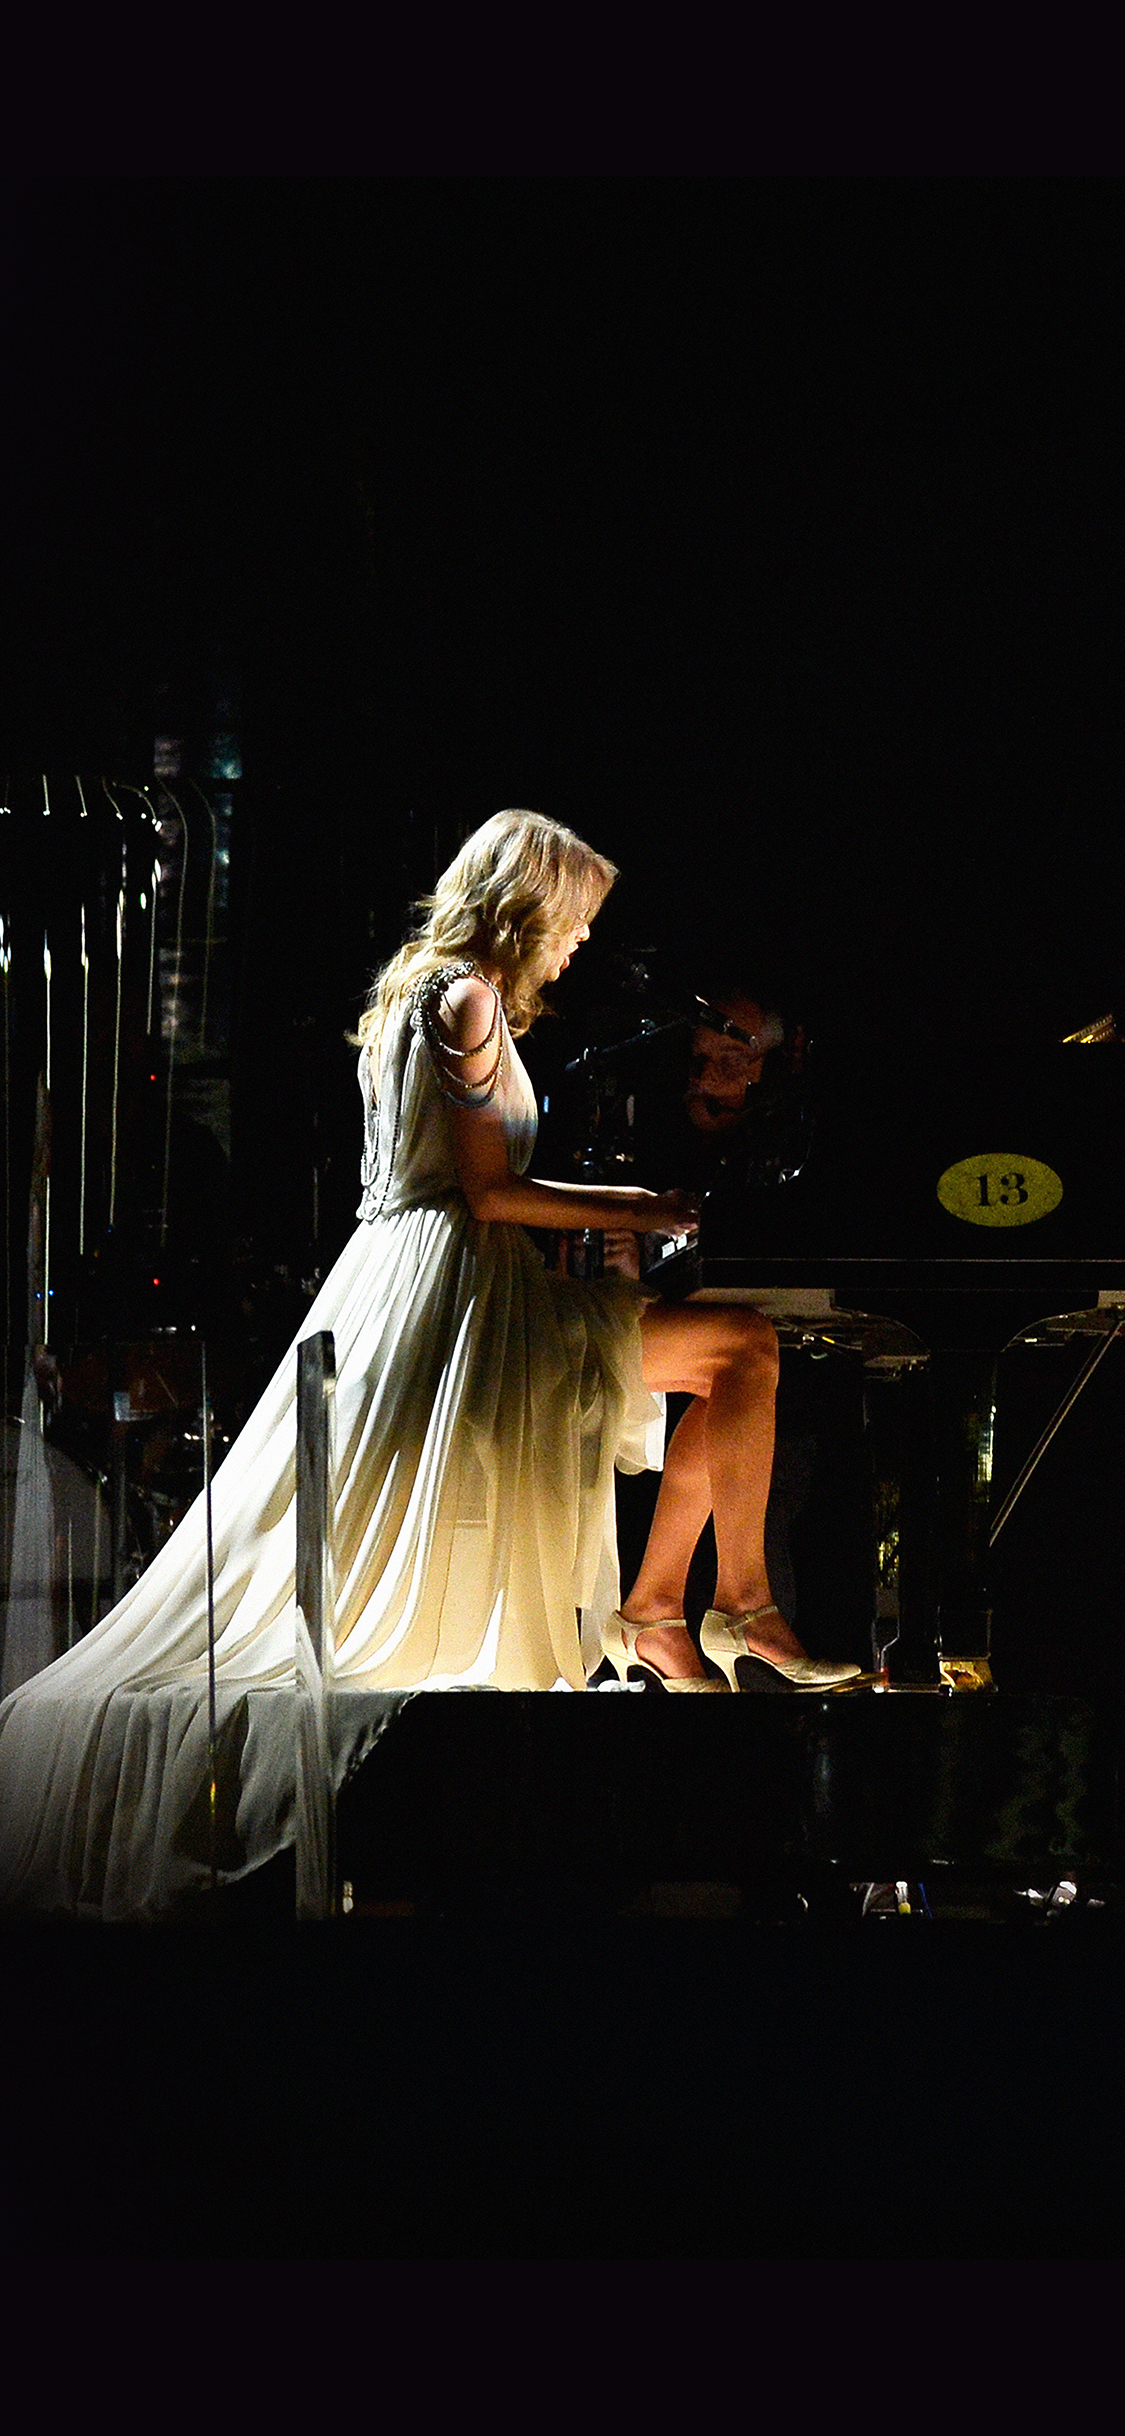 iPhoneXpapers.com-Apple-iPhone-wallpaper-hb40-wallpaper-taylor-swift-piano-concert-woman-music